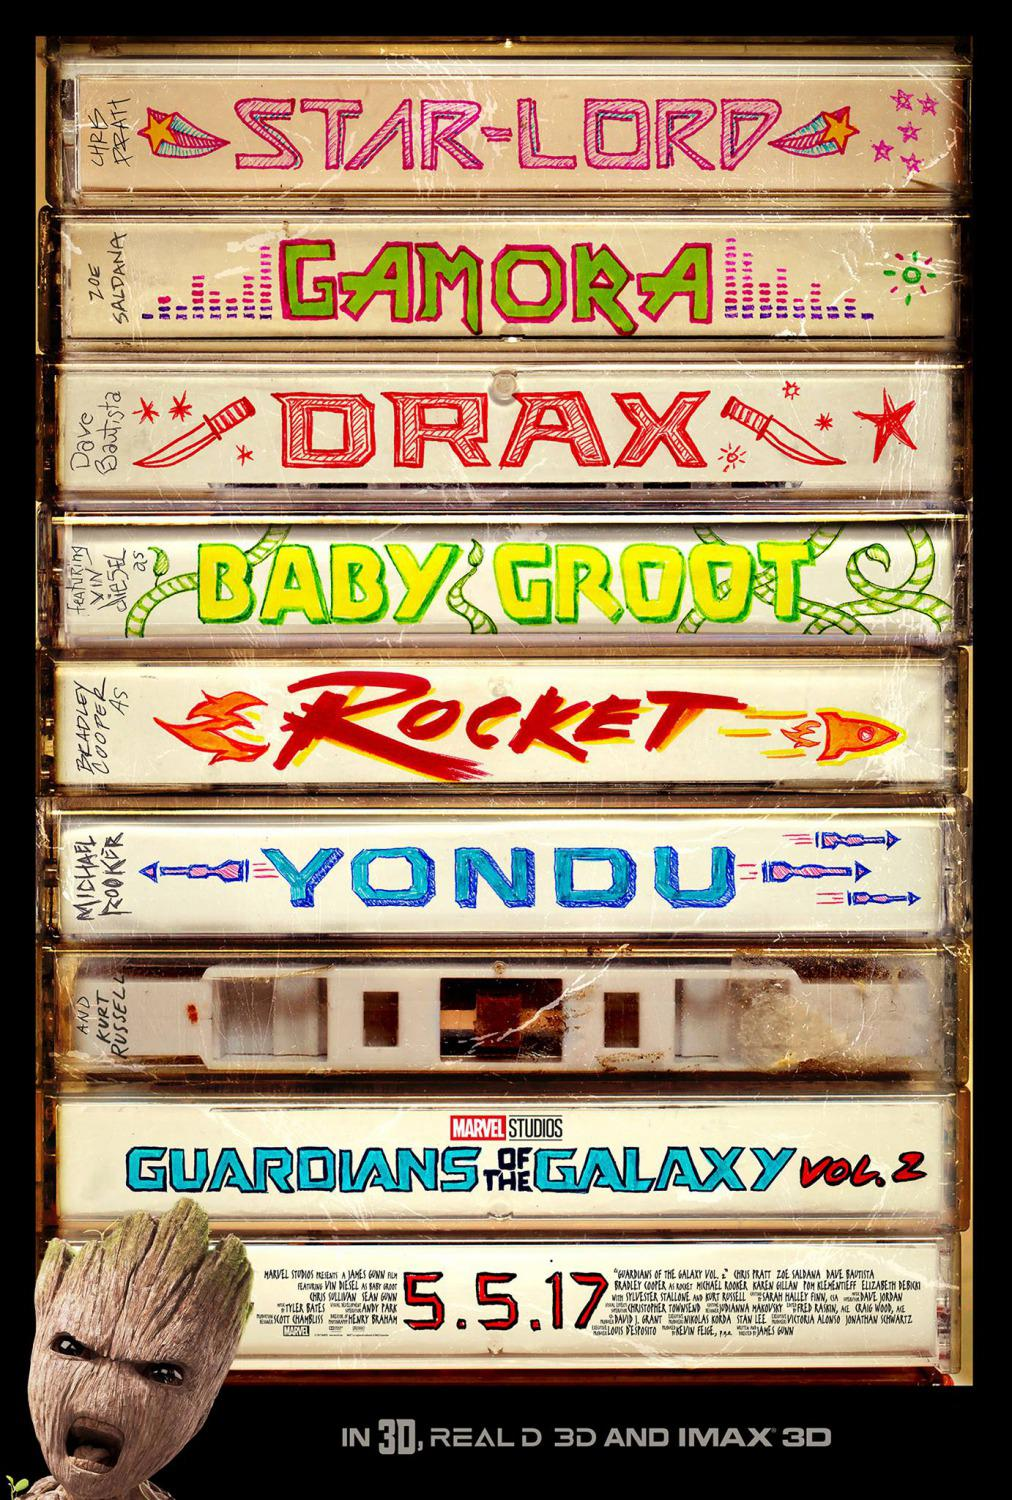 Guardians of the Galaxy vol two - Guardiani della Galassia 2 - Baby Groot tapes